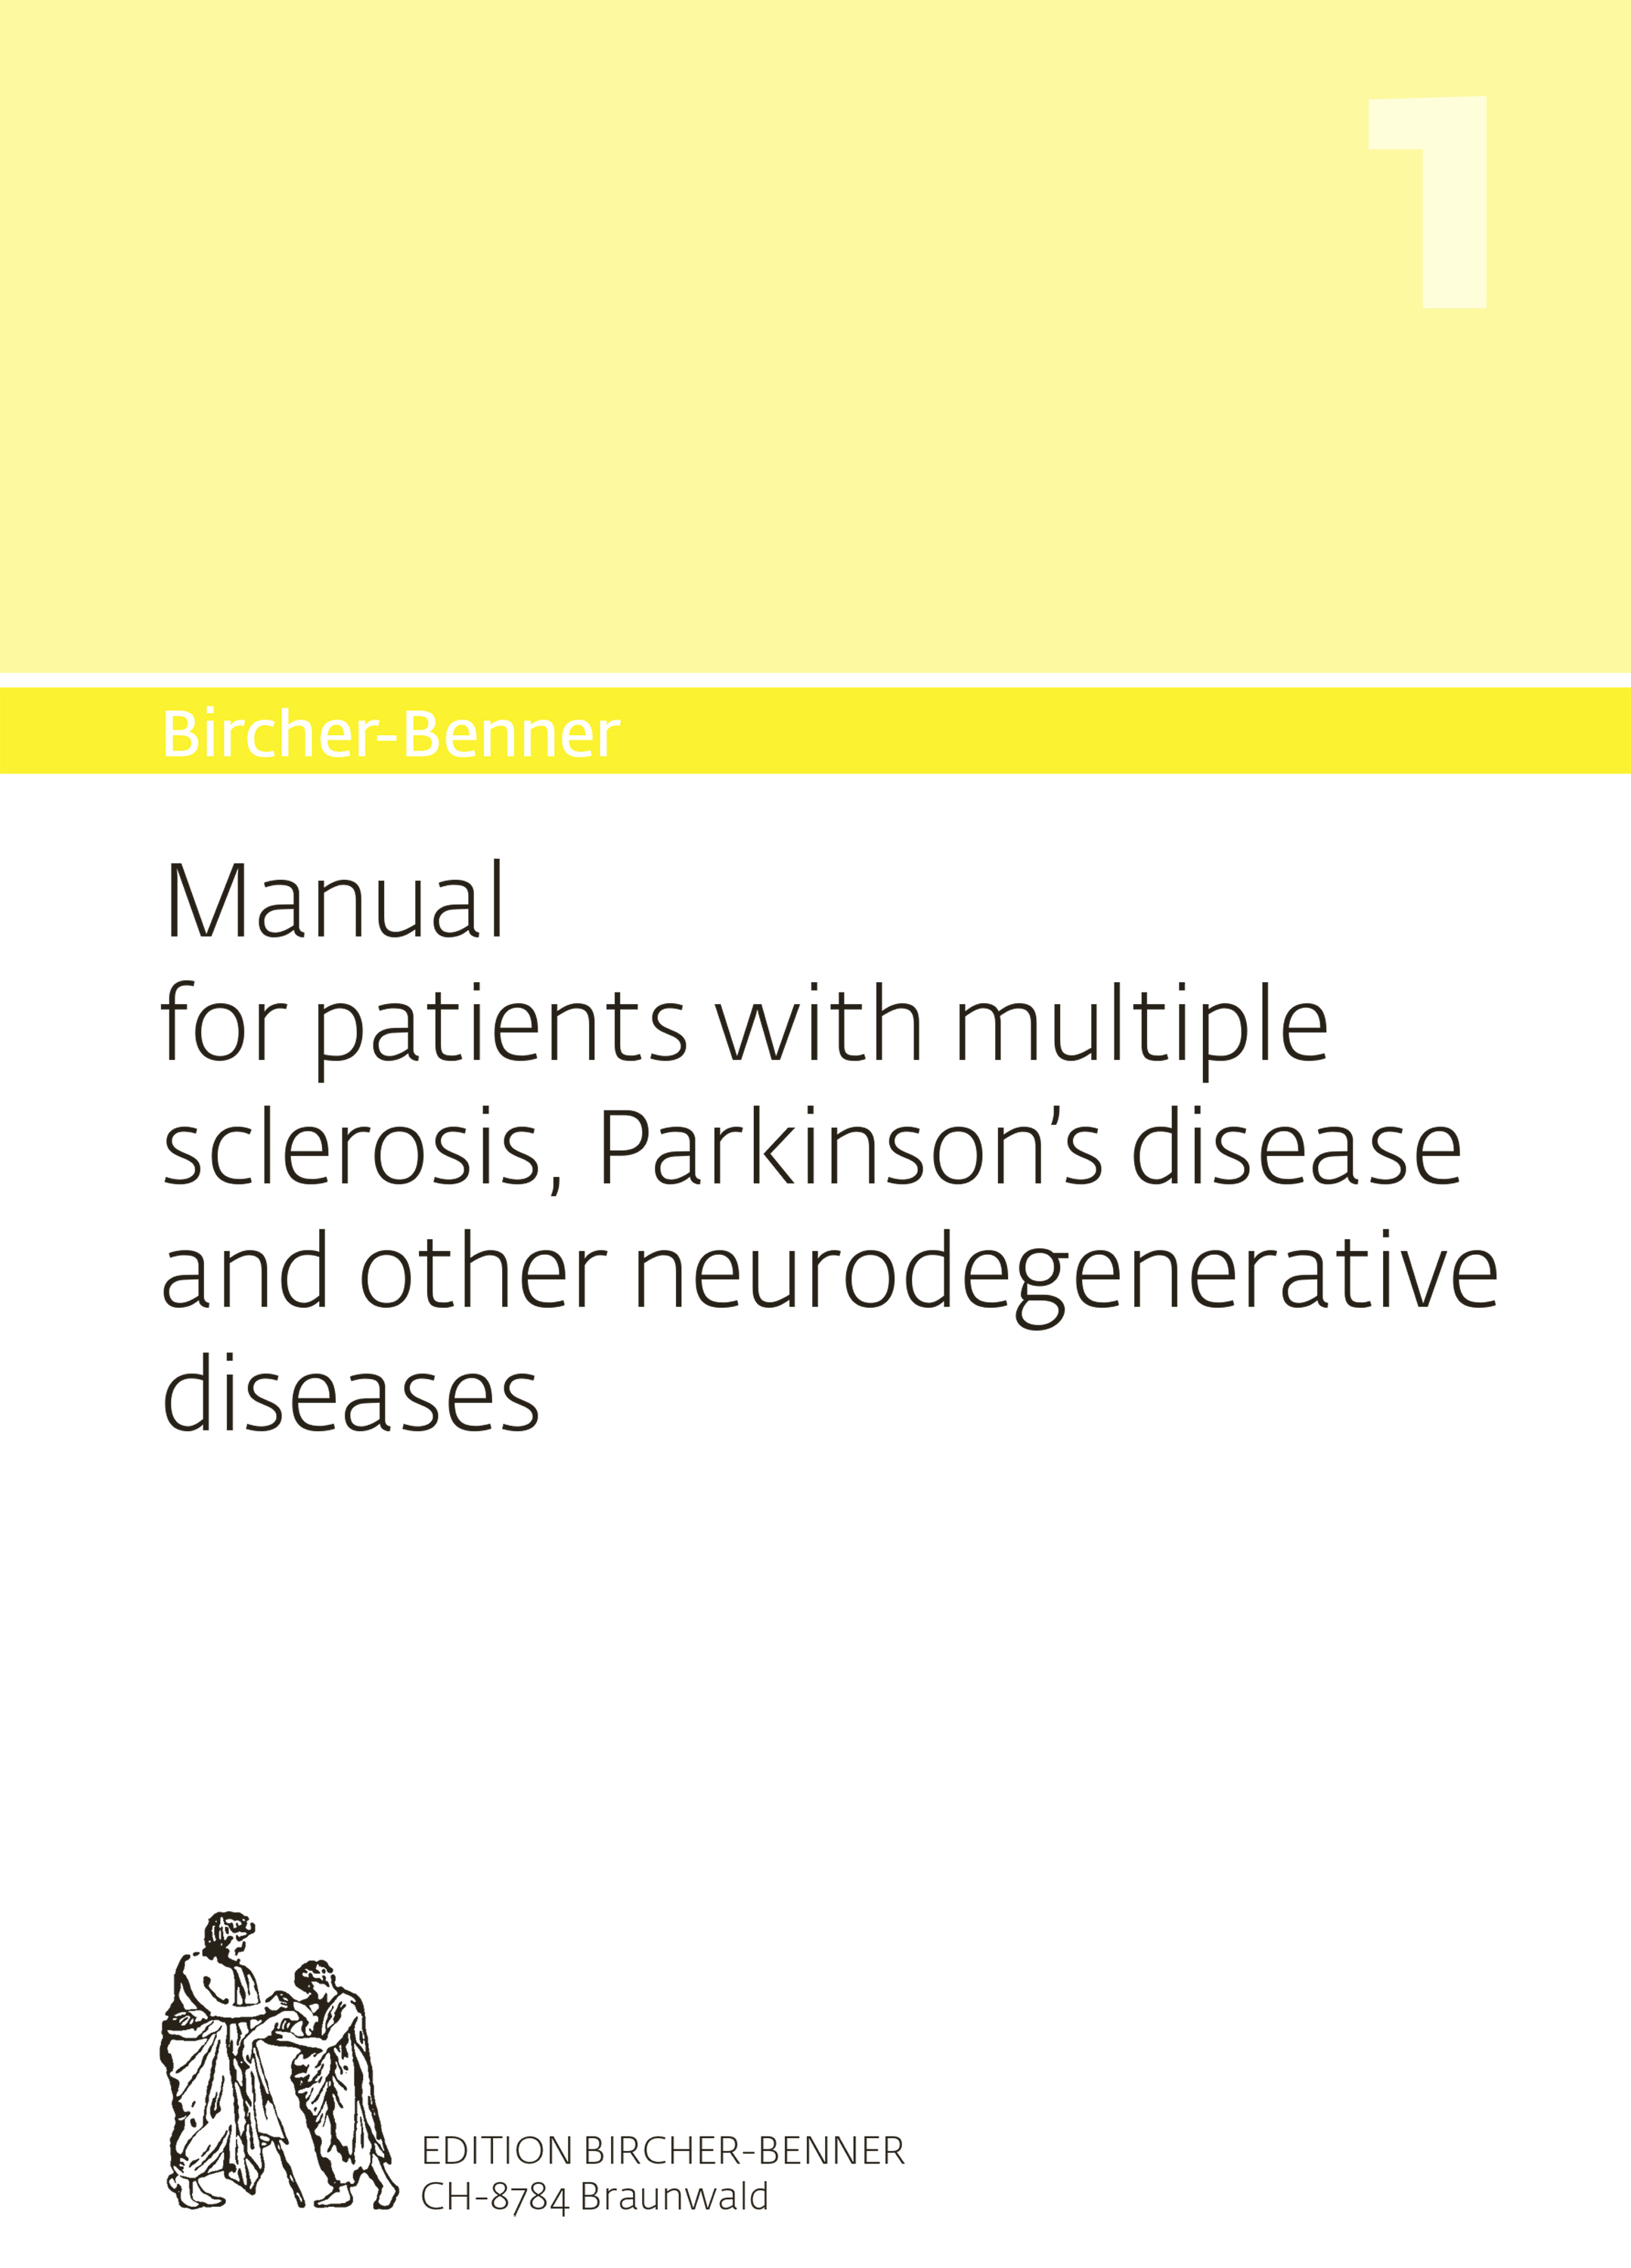 BIRCHER-BENNER 1 MANUAL FOR PATIENTS WITH MULTIPLE SCLEROSIS, PARKINSONS DISEASE AND OTHER NEURODEGENERATIVE DISEASES